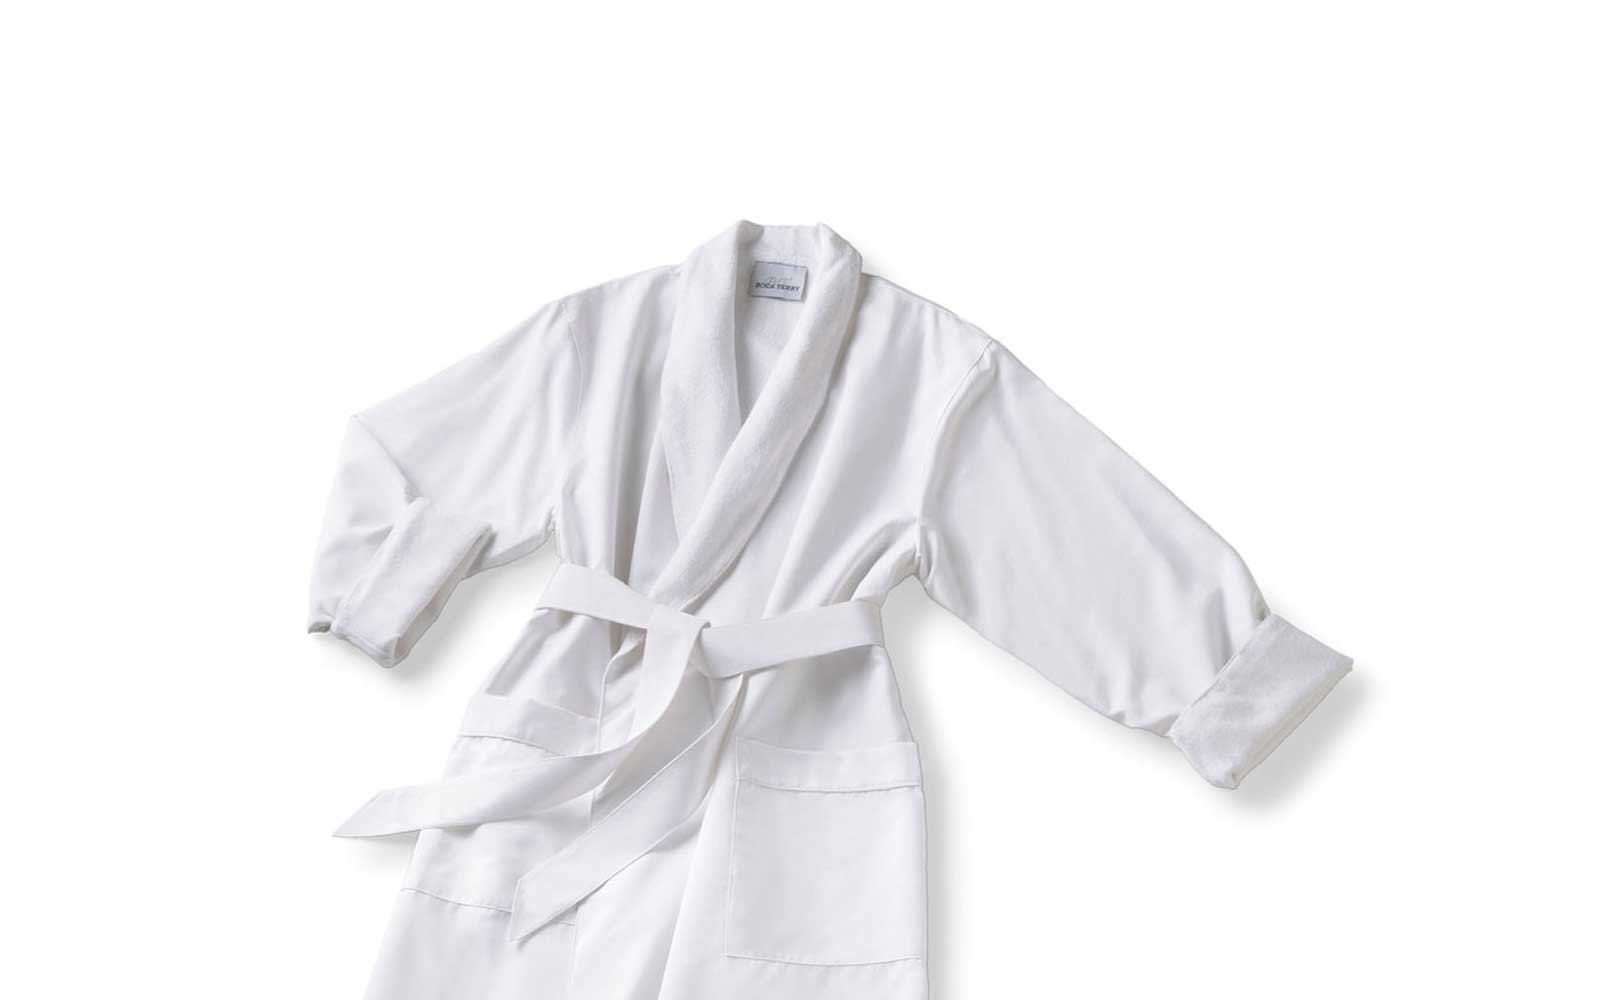 b83a0d5aea 14 Luxury Hotel-quality Bathrobes You Can Buy Online